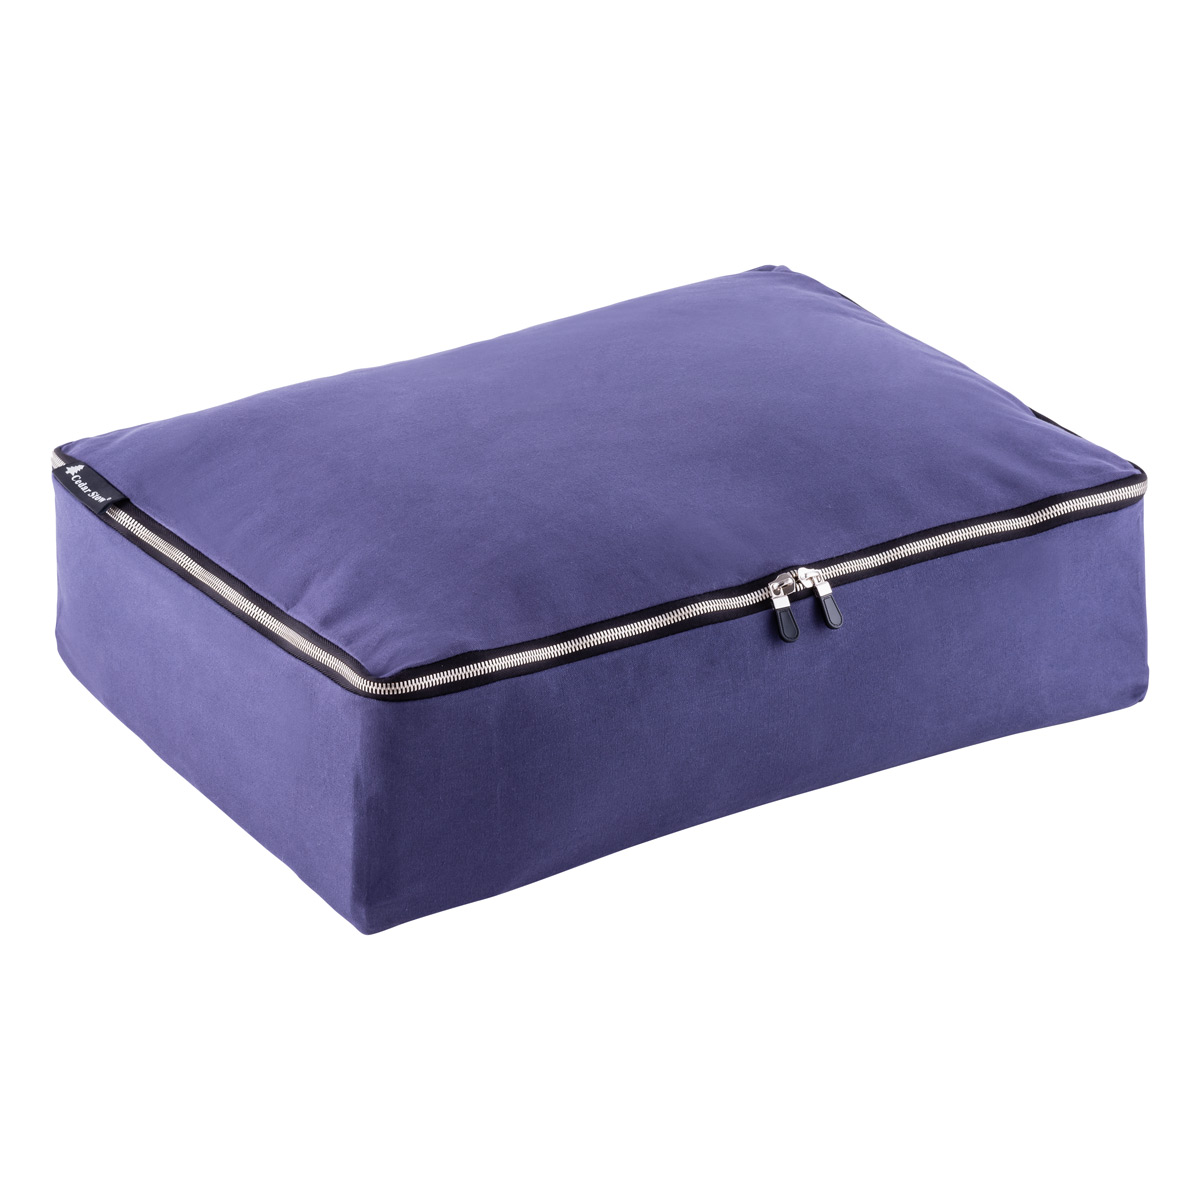 Cedar Stow Underbed Bag ...  sc 1 st  The Container Store & Cedar Stow Under Bed Bag | The Container Store